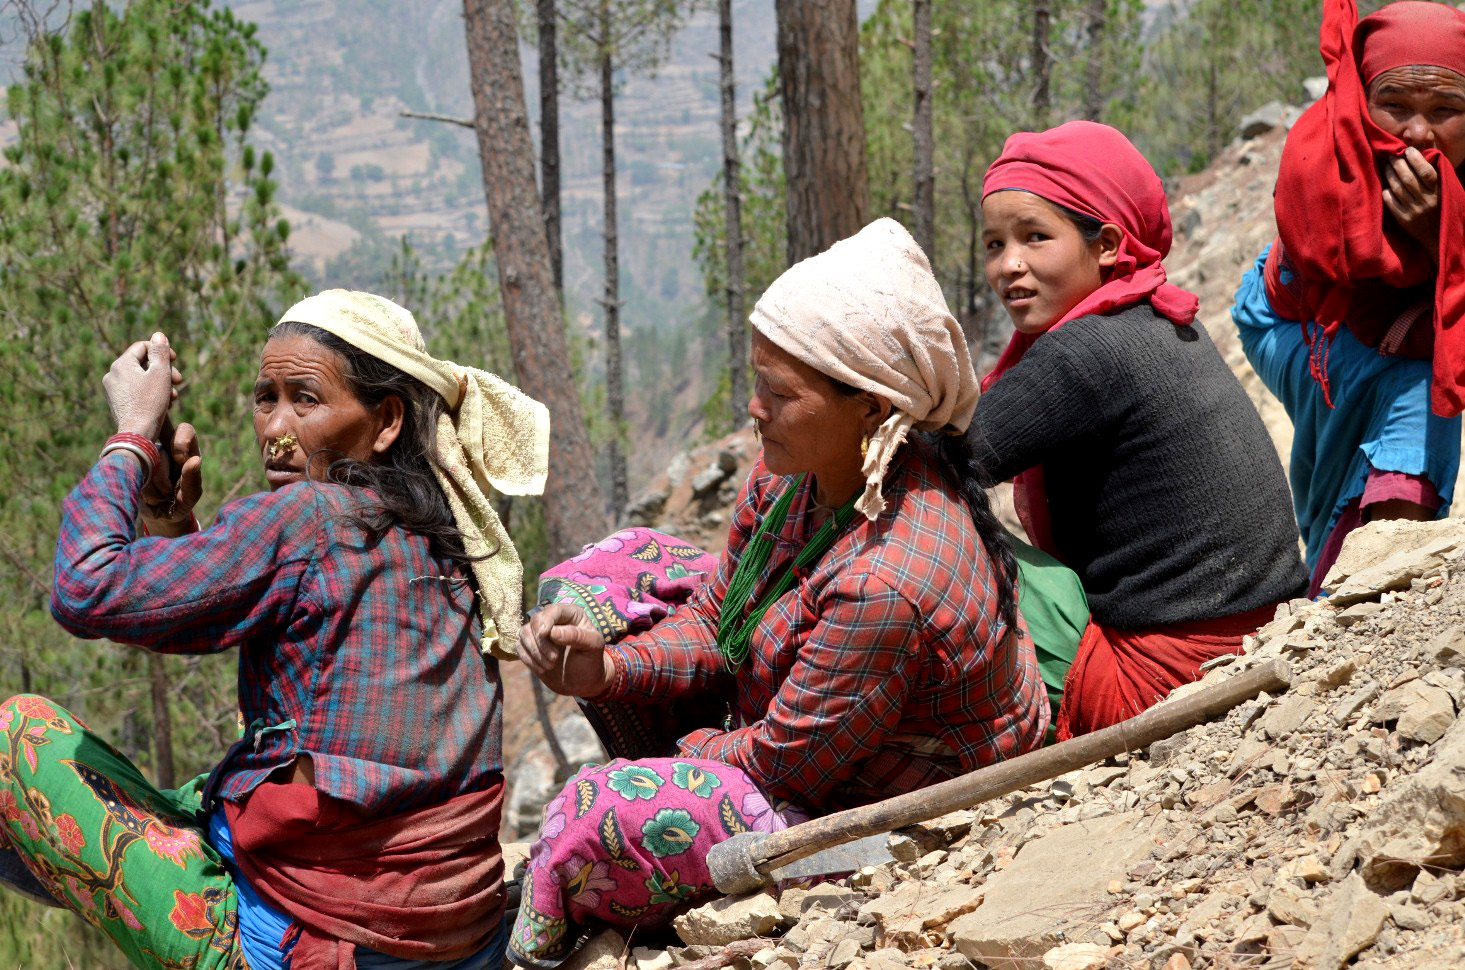 A group of women in Nepal's Mid-Western Region. Many women earn their livelihood through agriculture